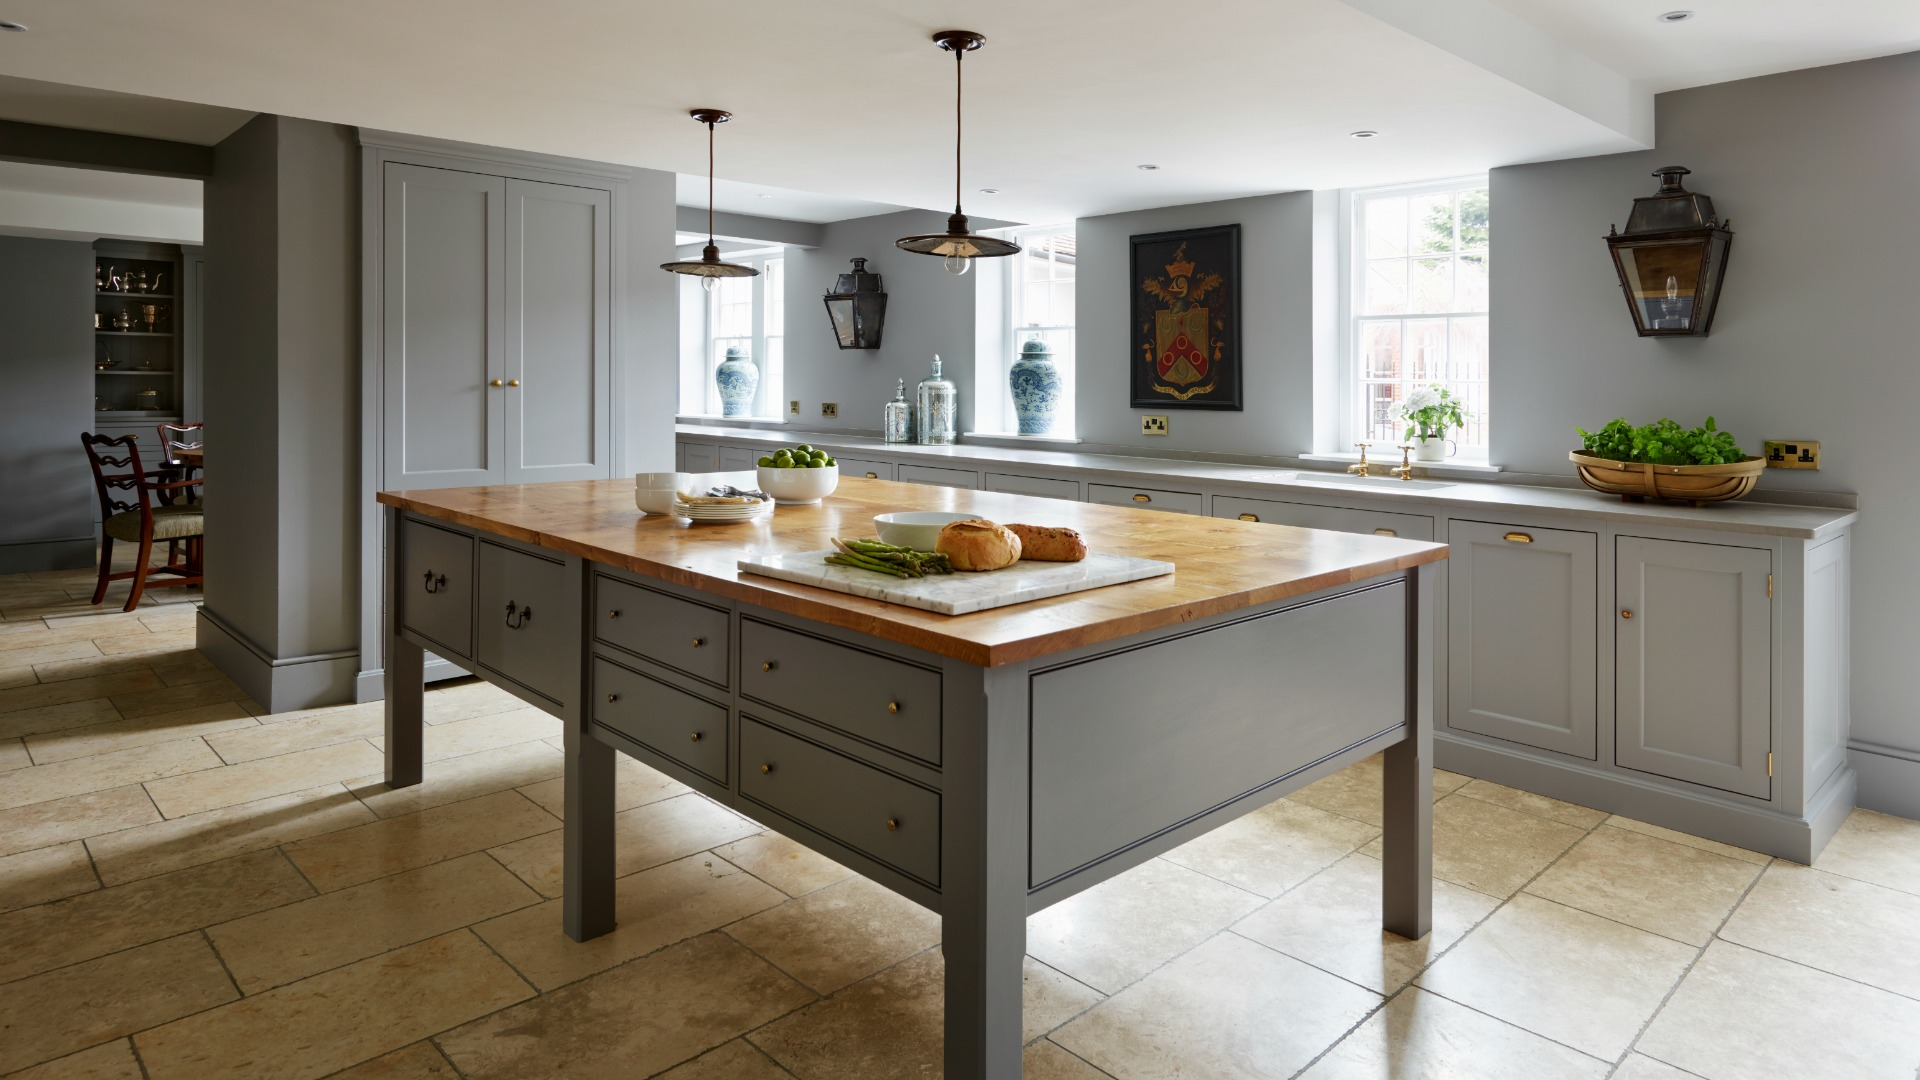 The Old Rectory Project, Nickleby Kitchen - Humphrey Munson